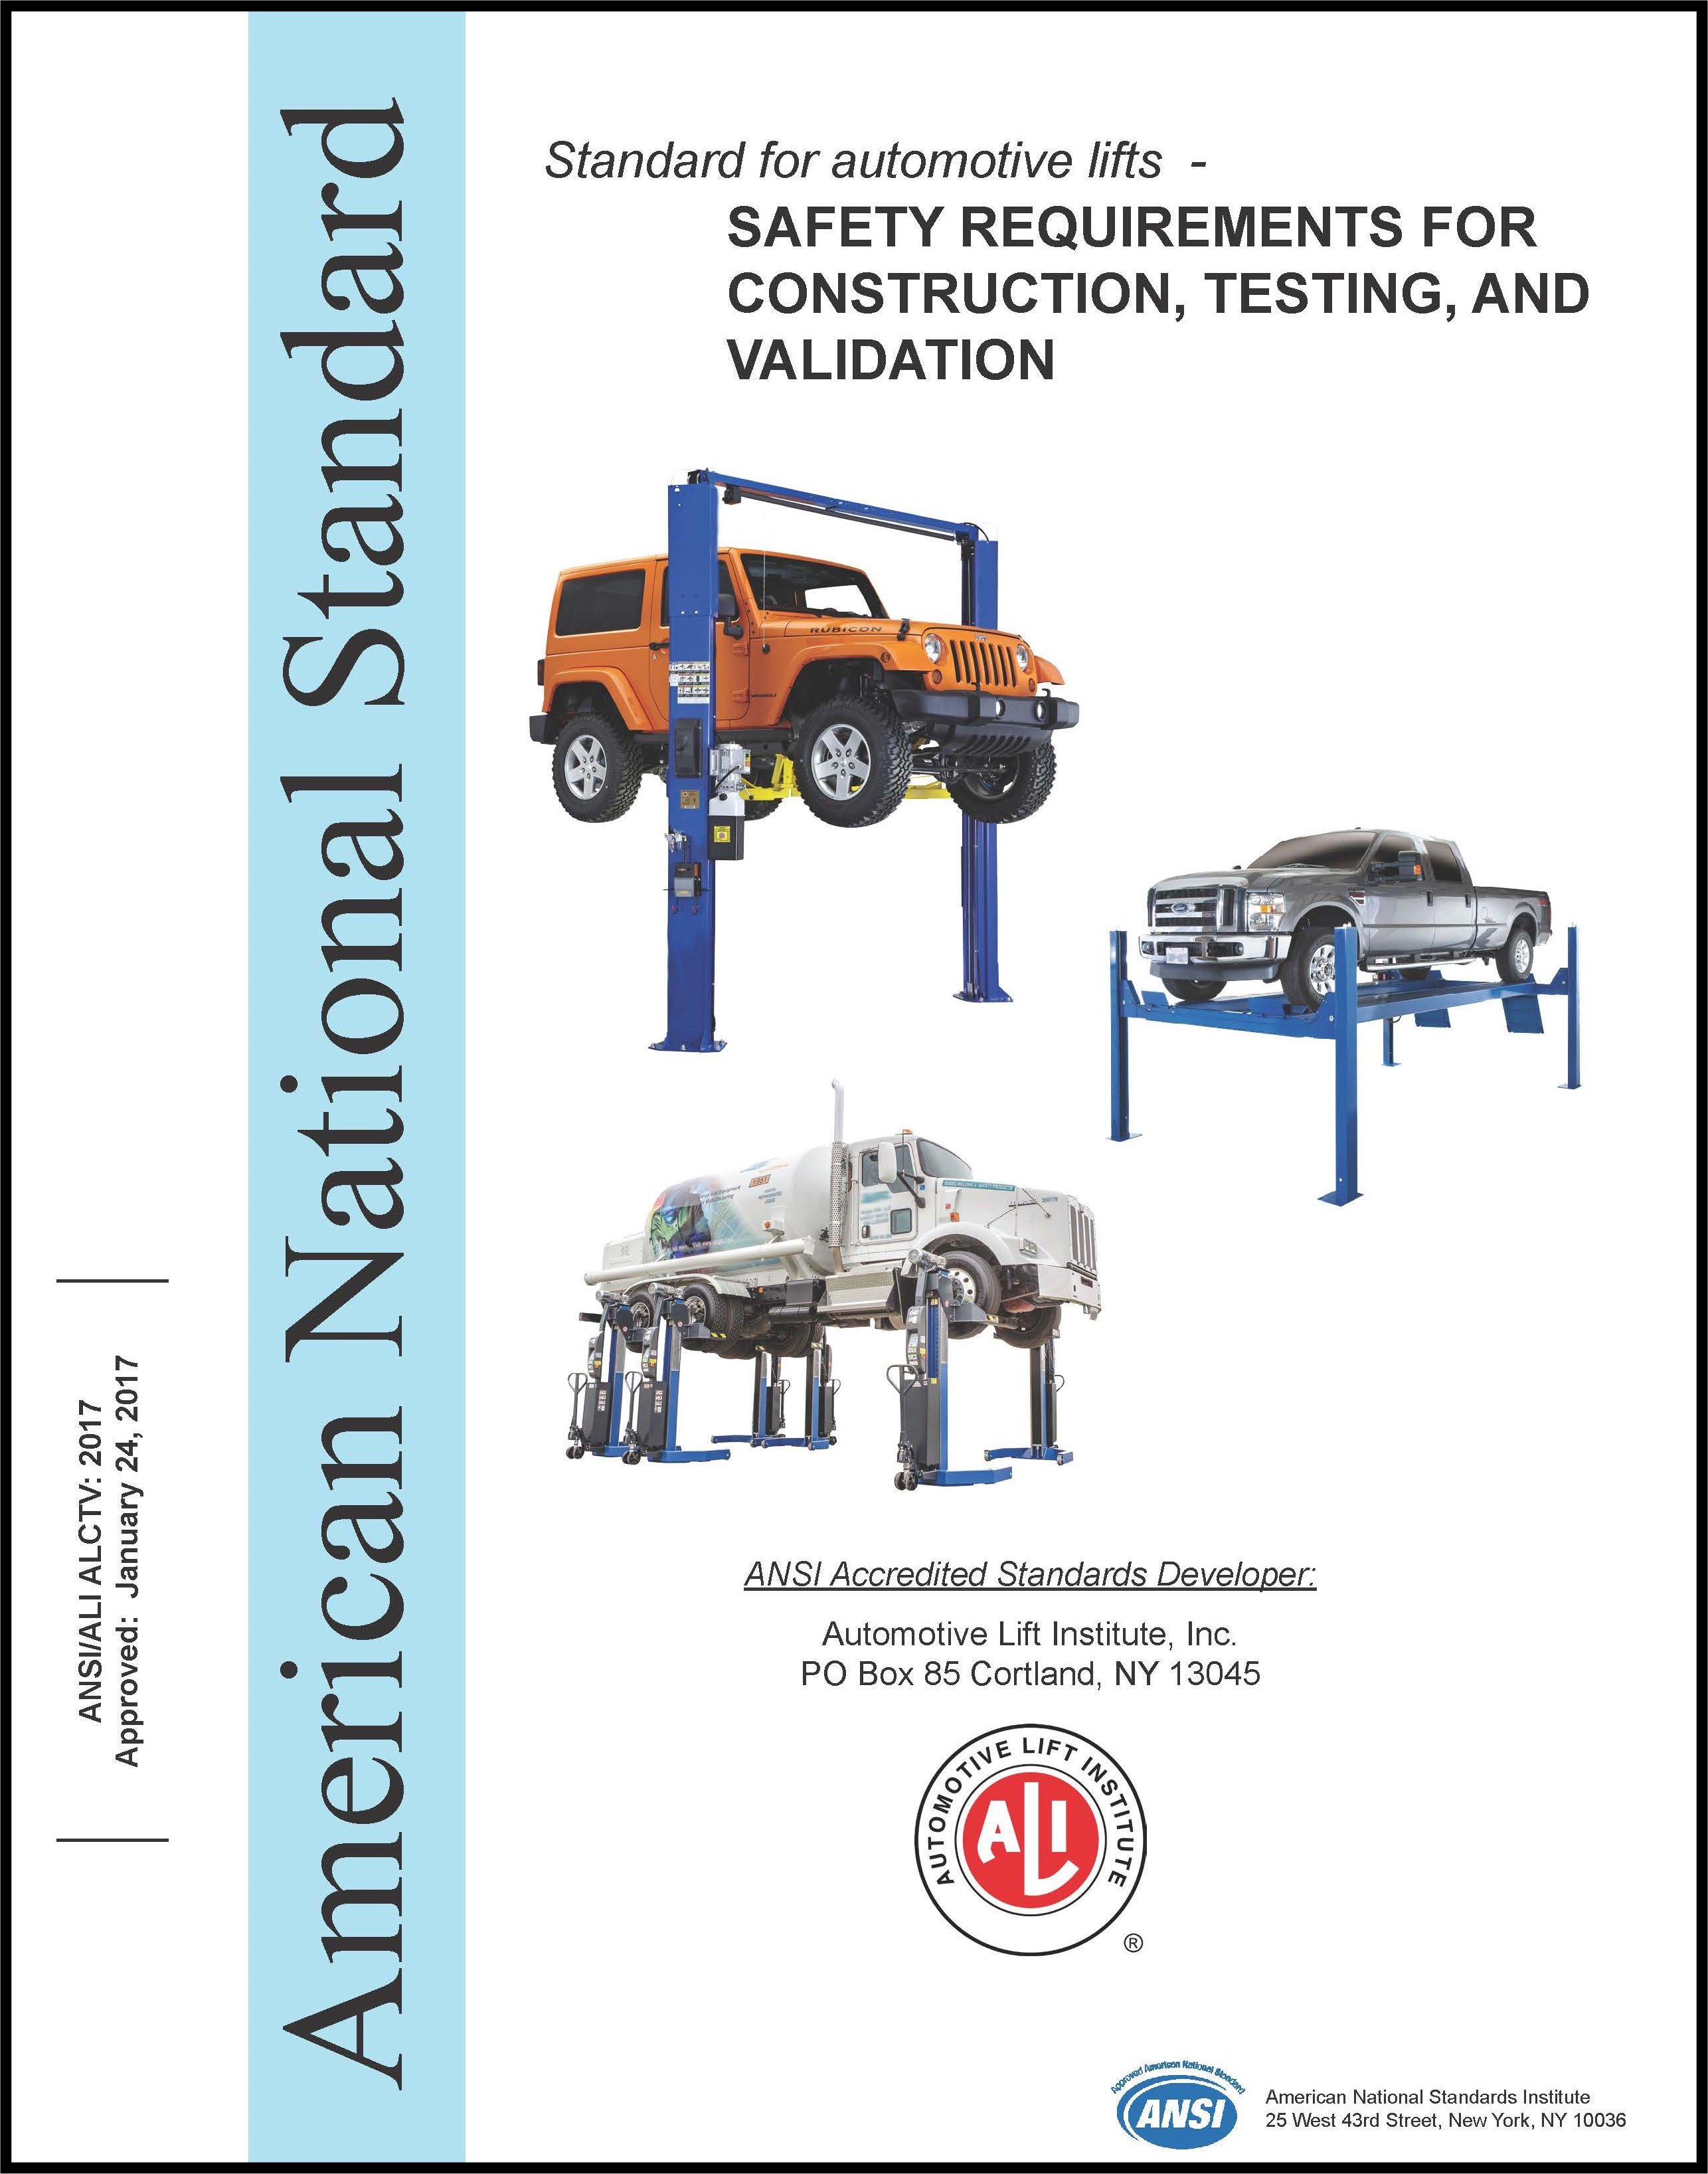 ansi/ali alctv is the safety standard covering vehicle lift design,  construction, testing and validation  the current edition, ansi/ali alctv:  2017,